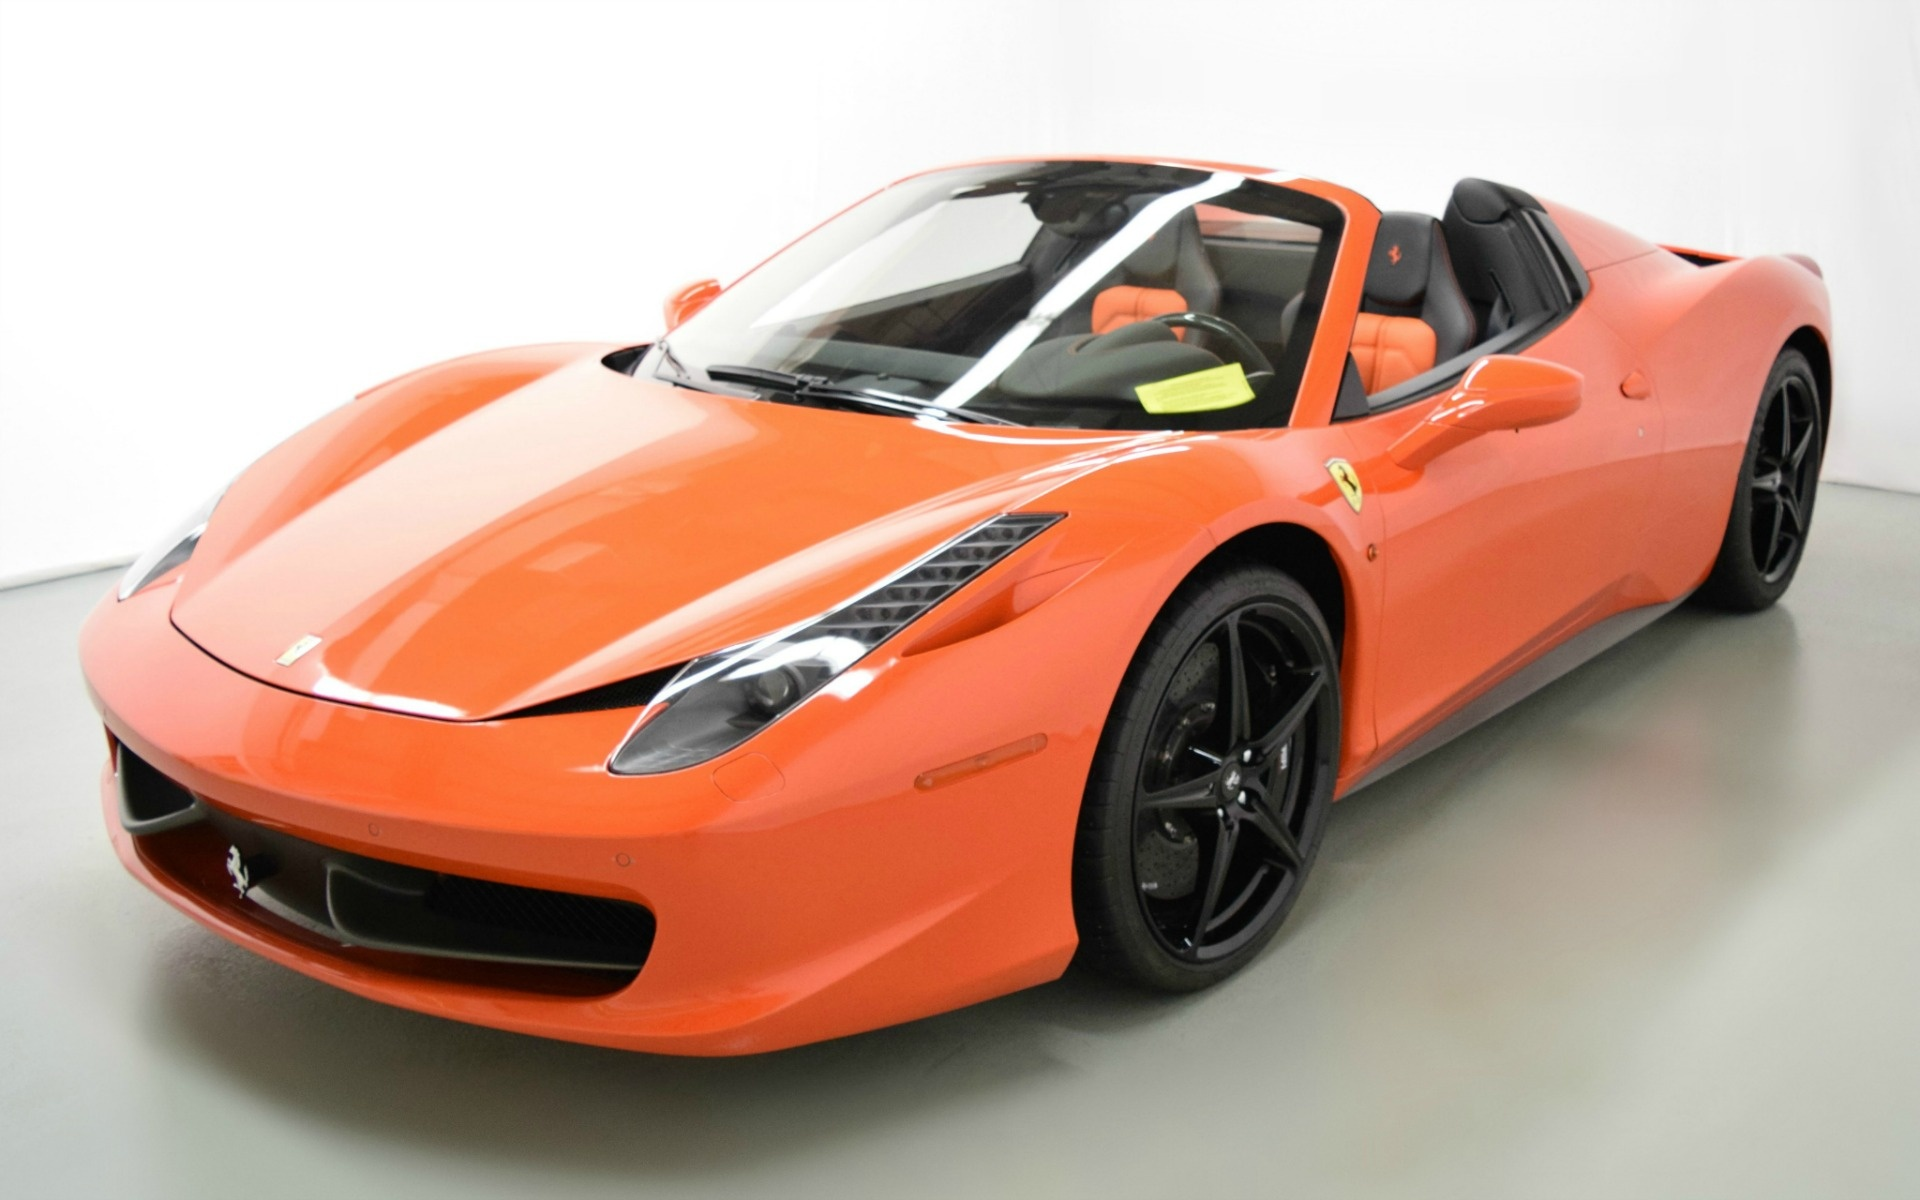 2015 ferrari 458 spider for sale in norwell ma 203958. Black Bedroom Furniture Sets. Home Design Ideas